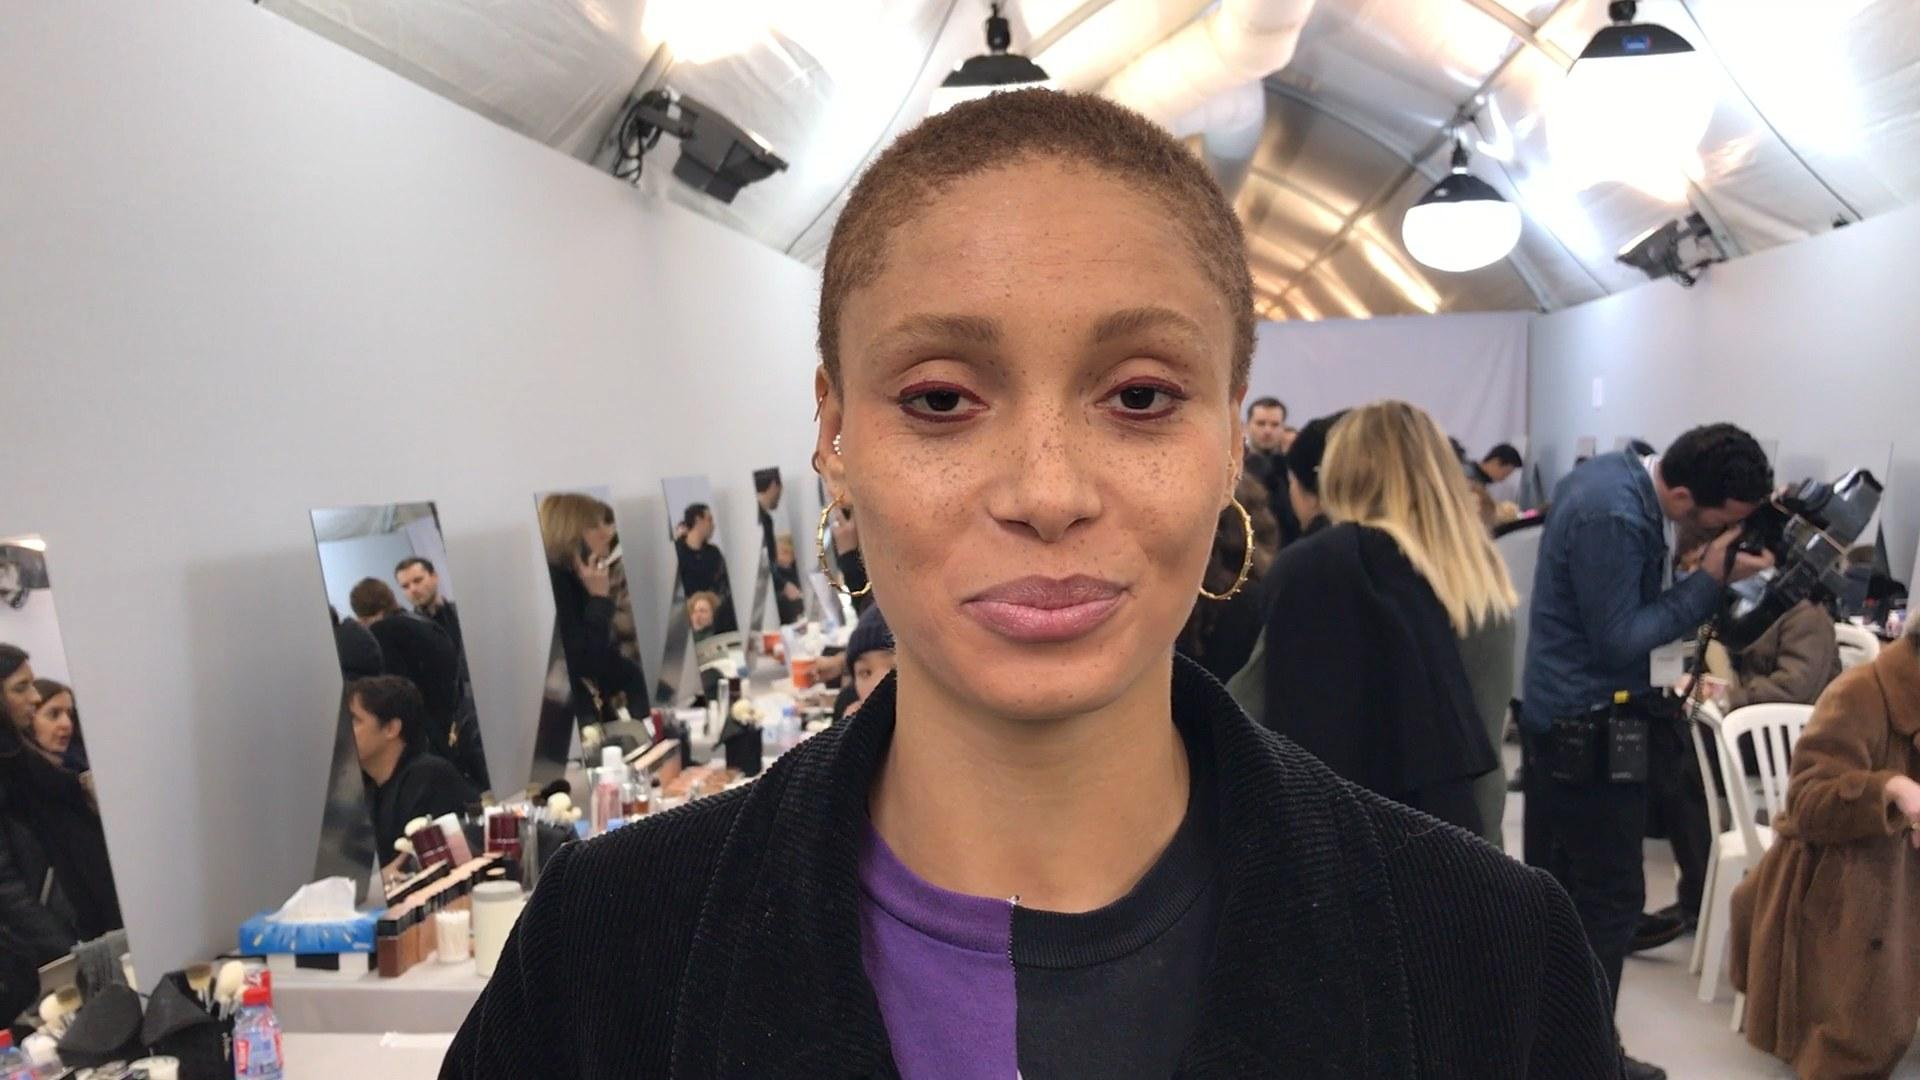 Backstage Hair and Makeup Video at Dior With Adwoa Aboah, Peter